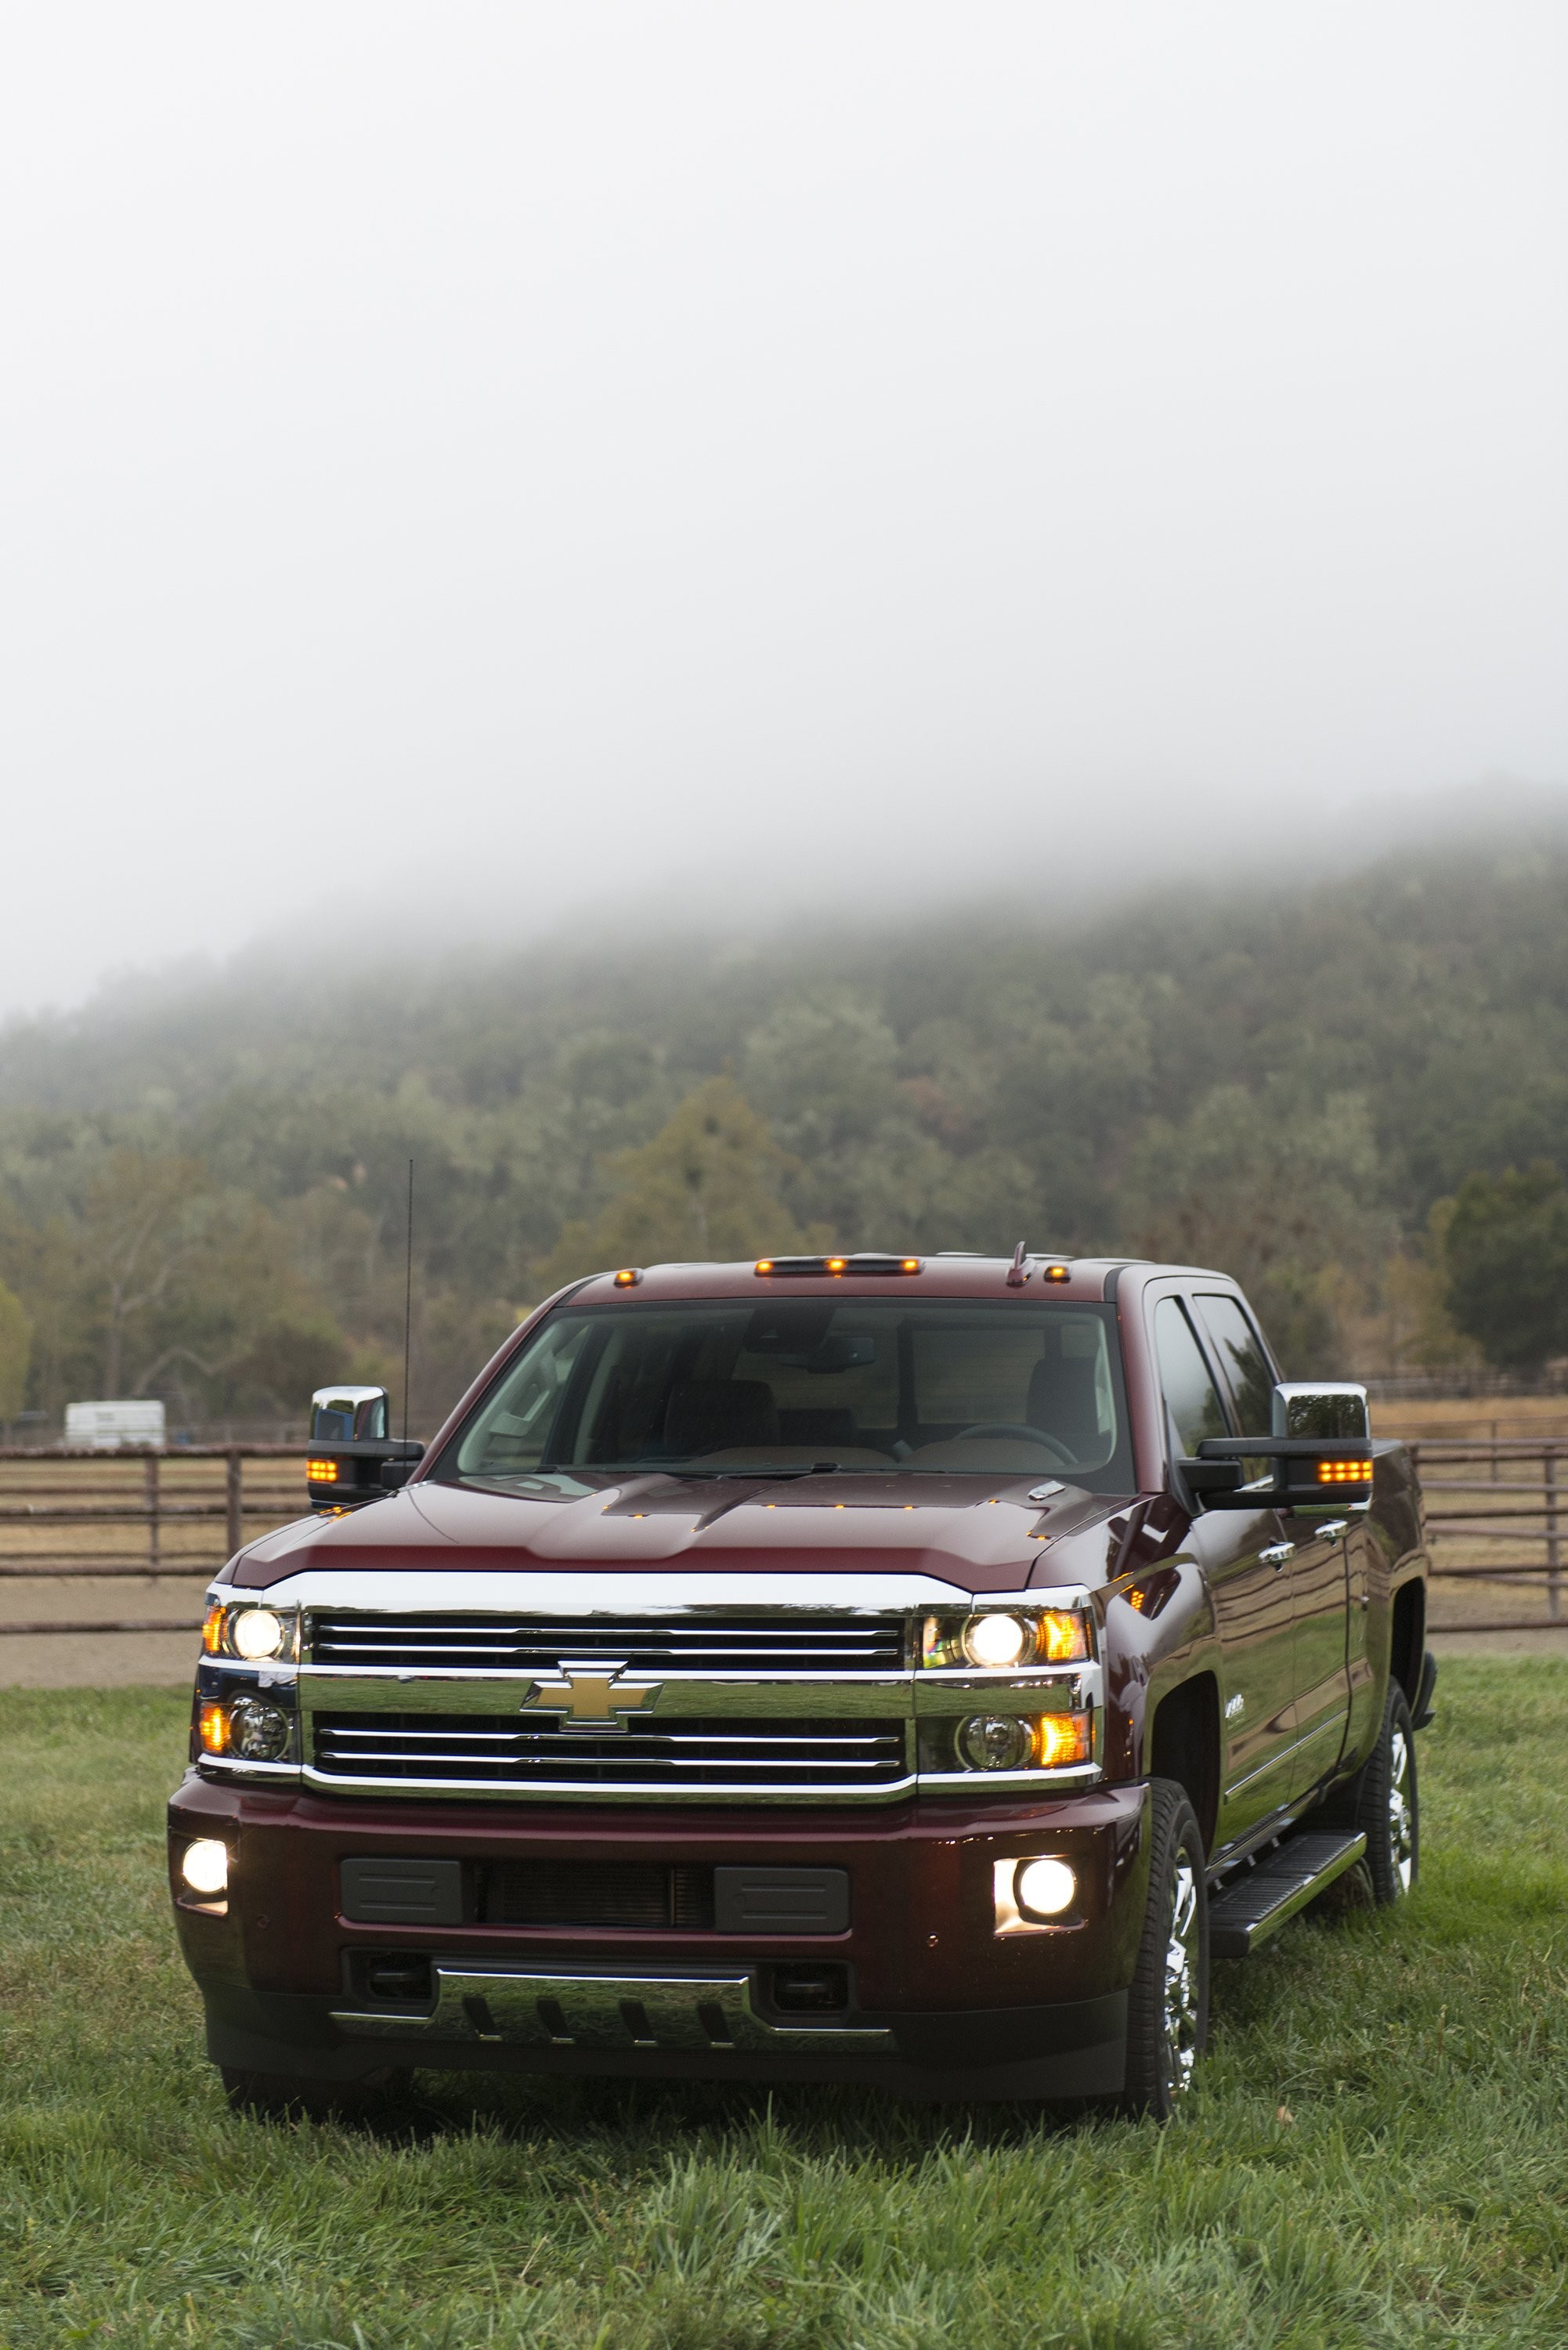 2002x3000 2016 Chevrolet Silverado 2500 H D High Country Chevy Trucks Wallpaper Iphone 2002x3000 Wallpaper Teahub Io